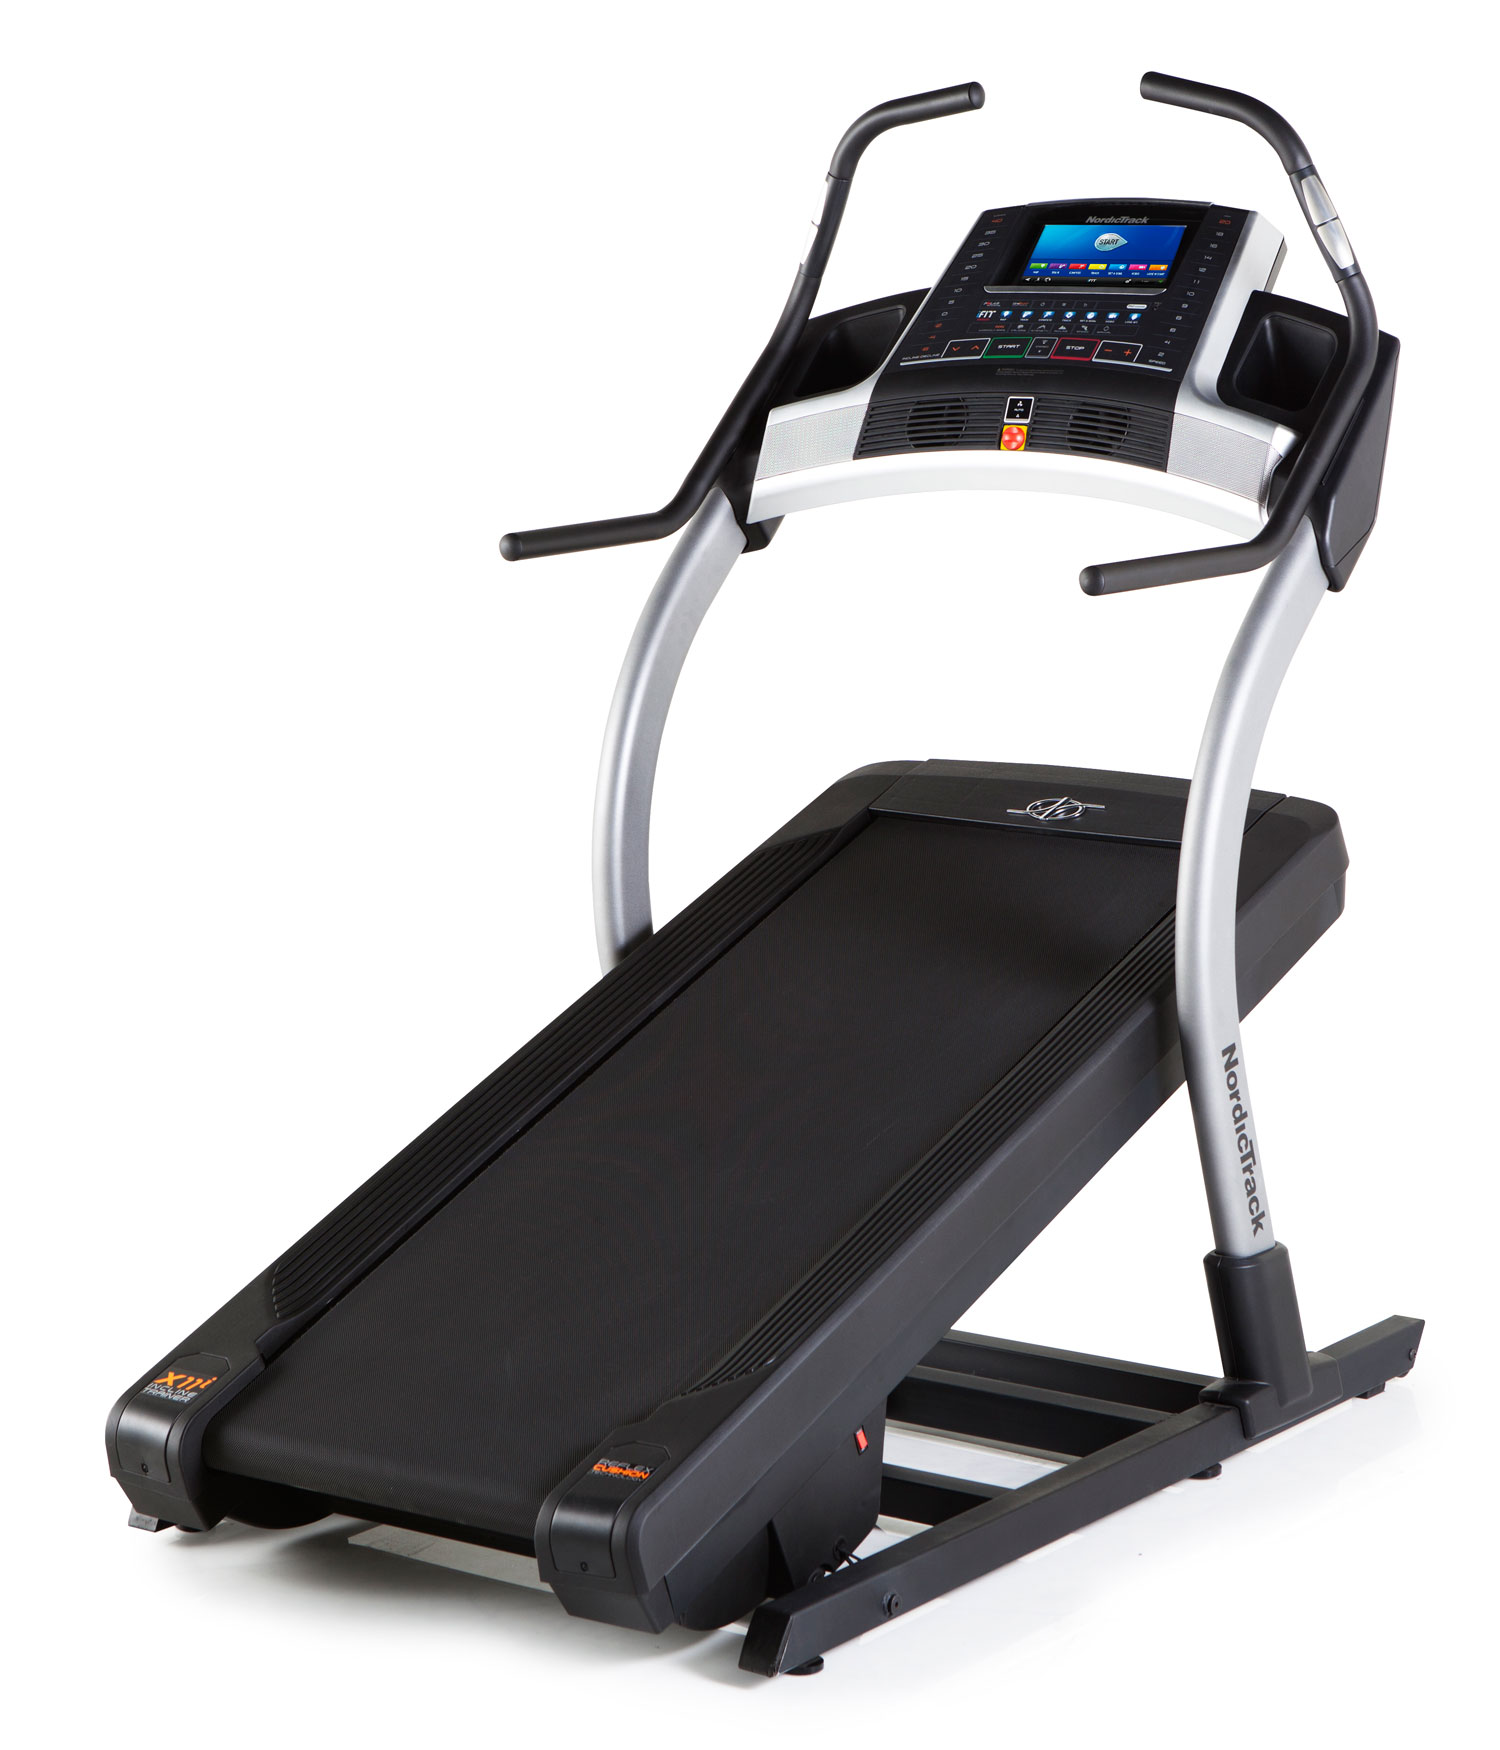 Беговая дорожка NordicTrack Incline Trainer X9i (США) - NETL29714